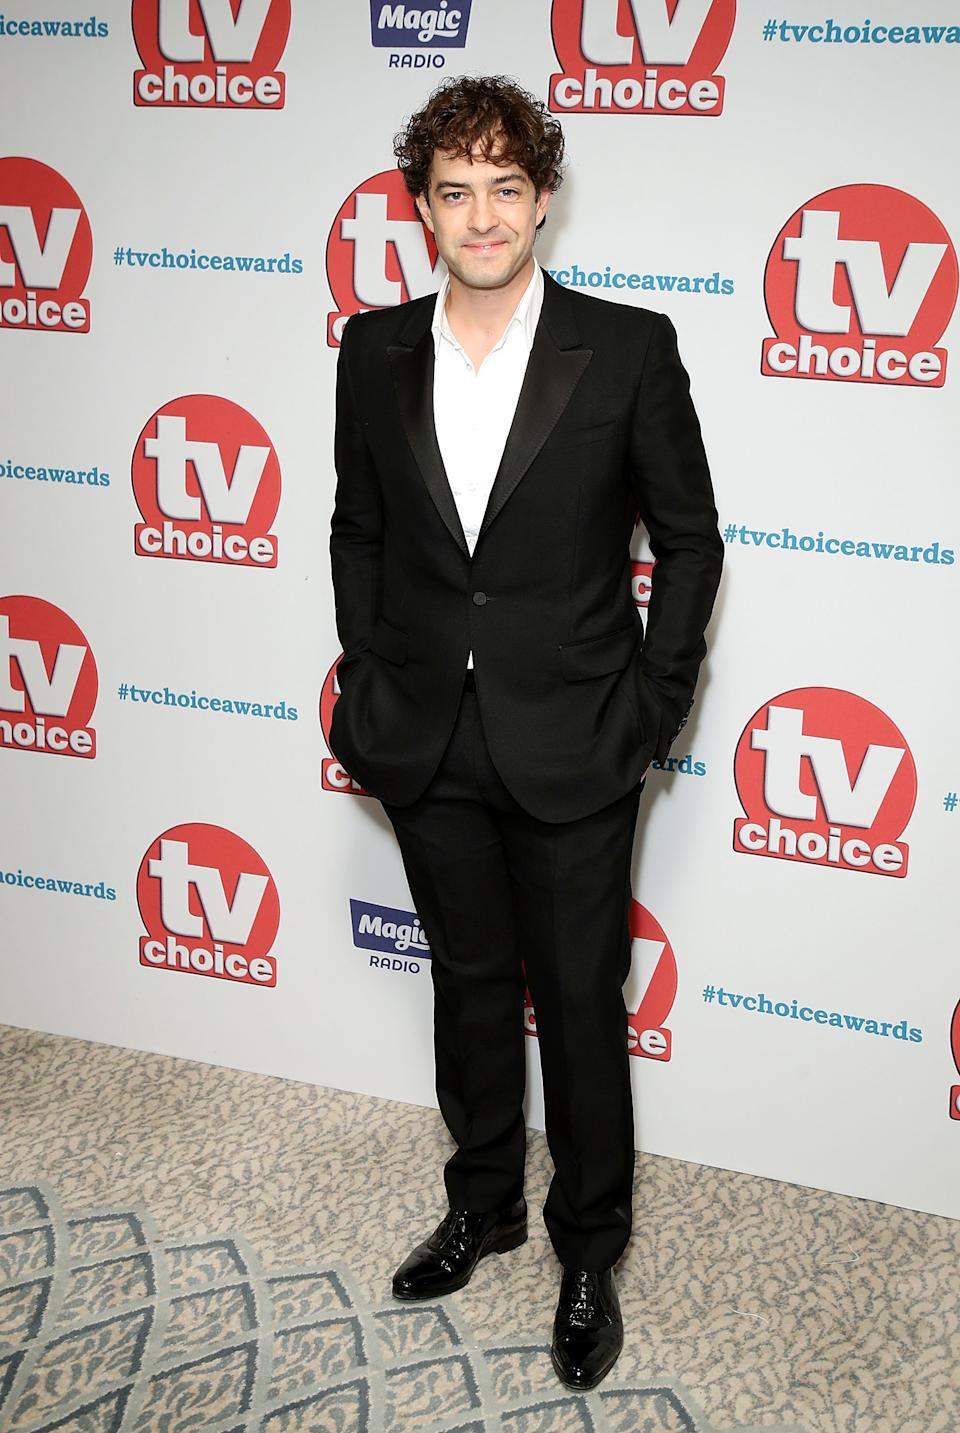 Lee Mead arrives for the TV Choice Awards at The Dorchester on September 4, 2017 in London, England.  (Photo by Mike Marsland/Mike Marsland/WireImage)